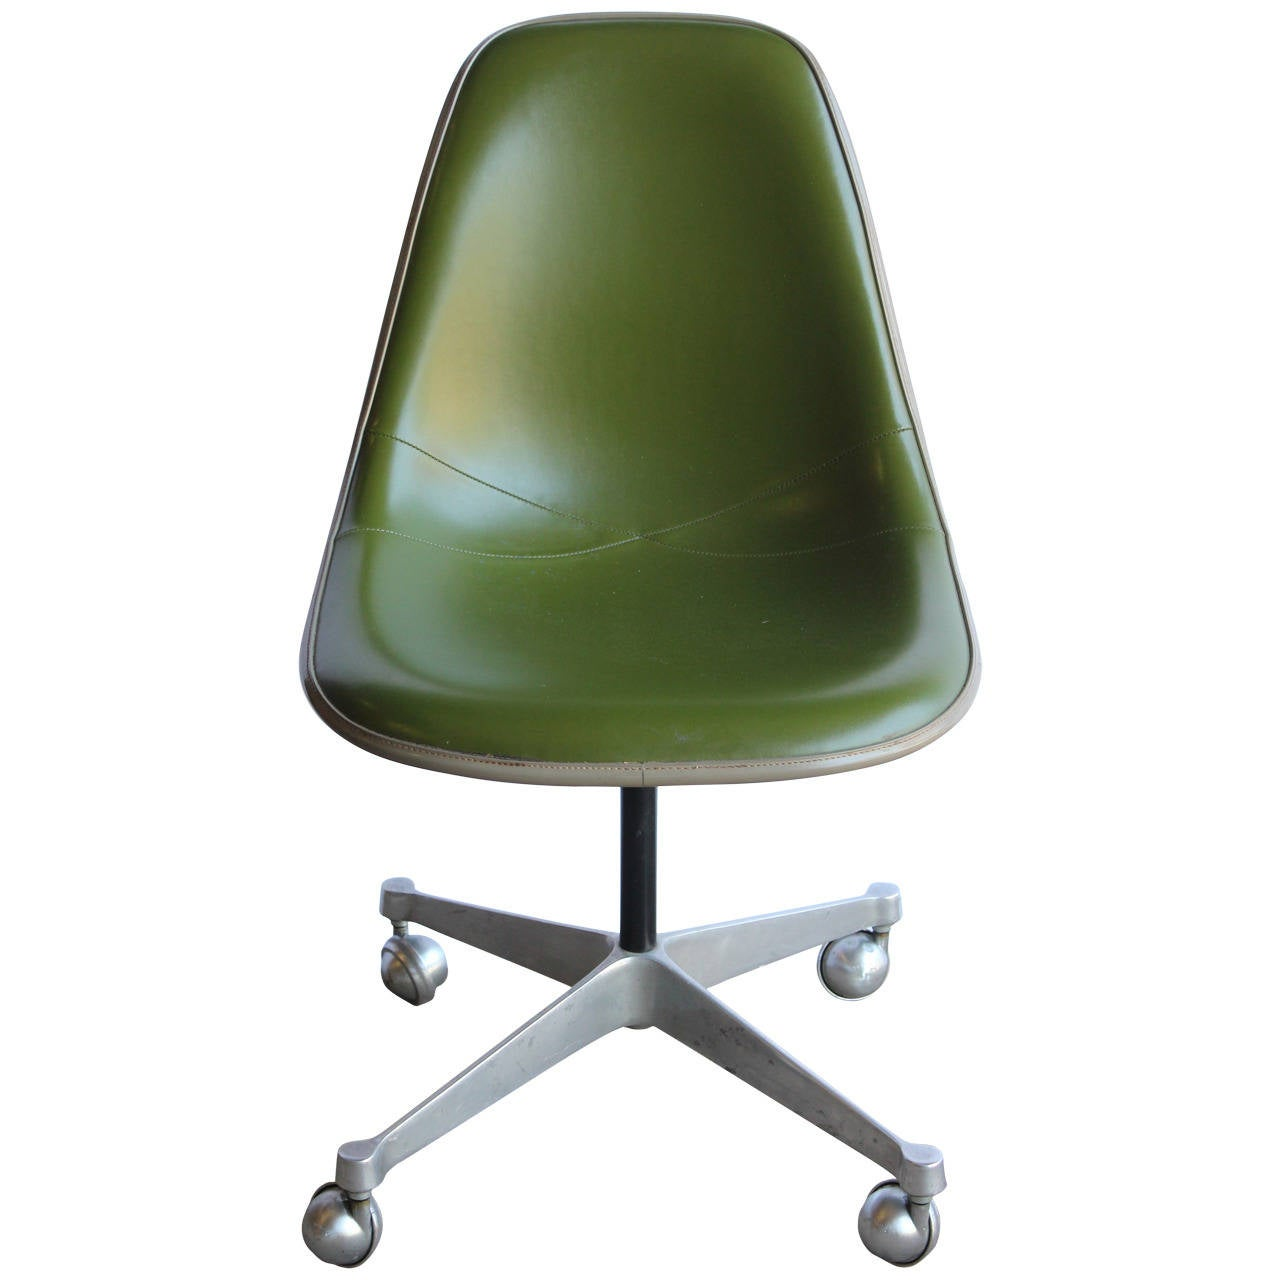 Herman Miller Eames Office Chair 1960s Charles Eames Desk Chair For Herman Miller At 1stdibs